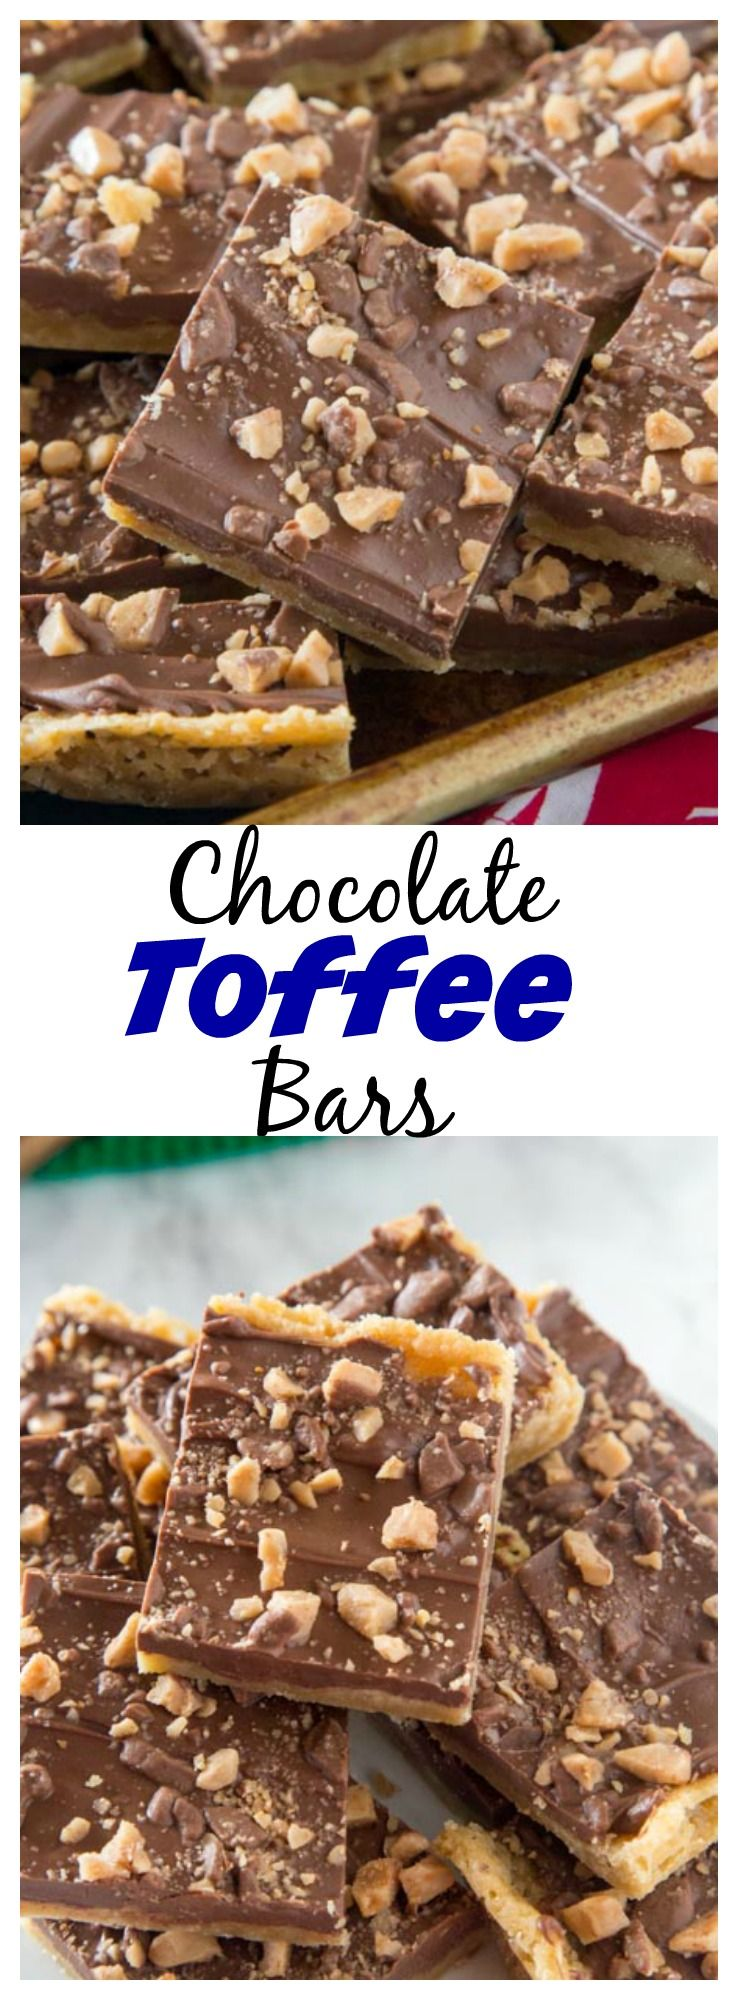 Chocolate Toffee Bars   crispy toffee flavored bars topped with chocolate and lots of bits of toffee  Just 6 ingredients, and so easy to make! is part of Chocolate toffee bars -